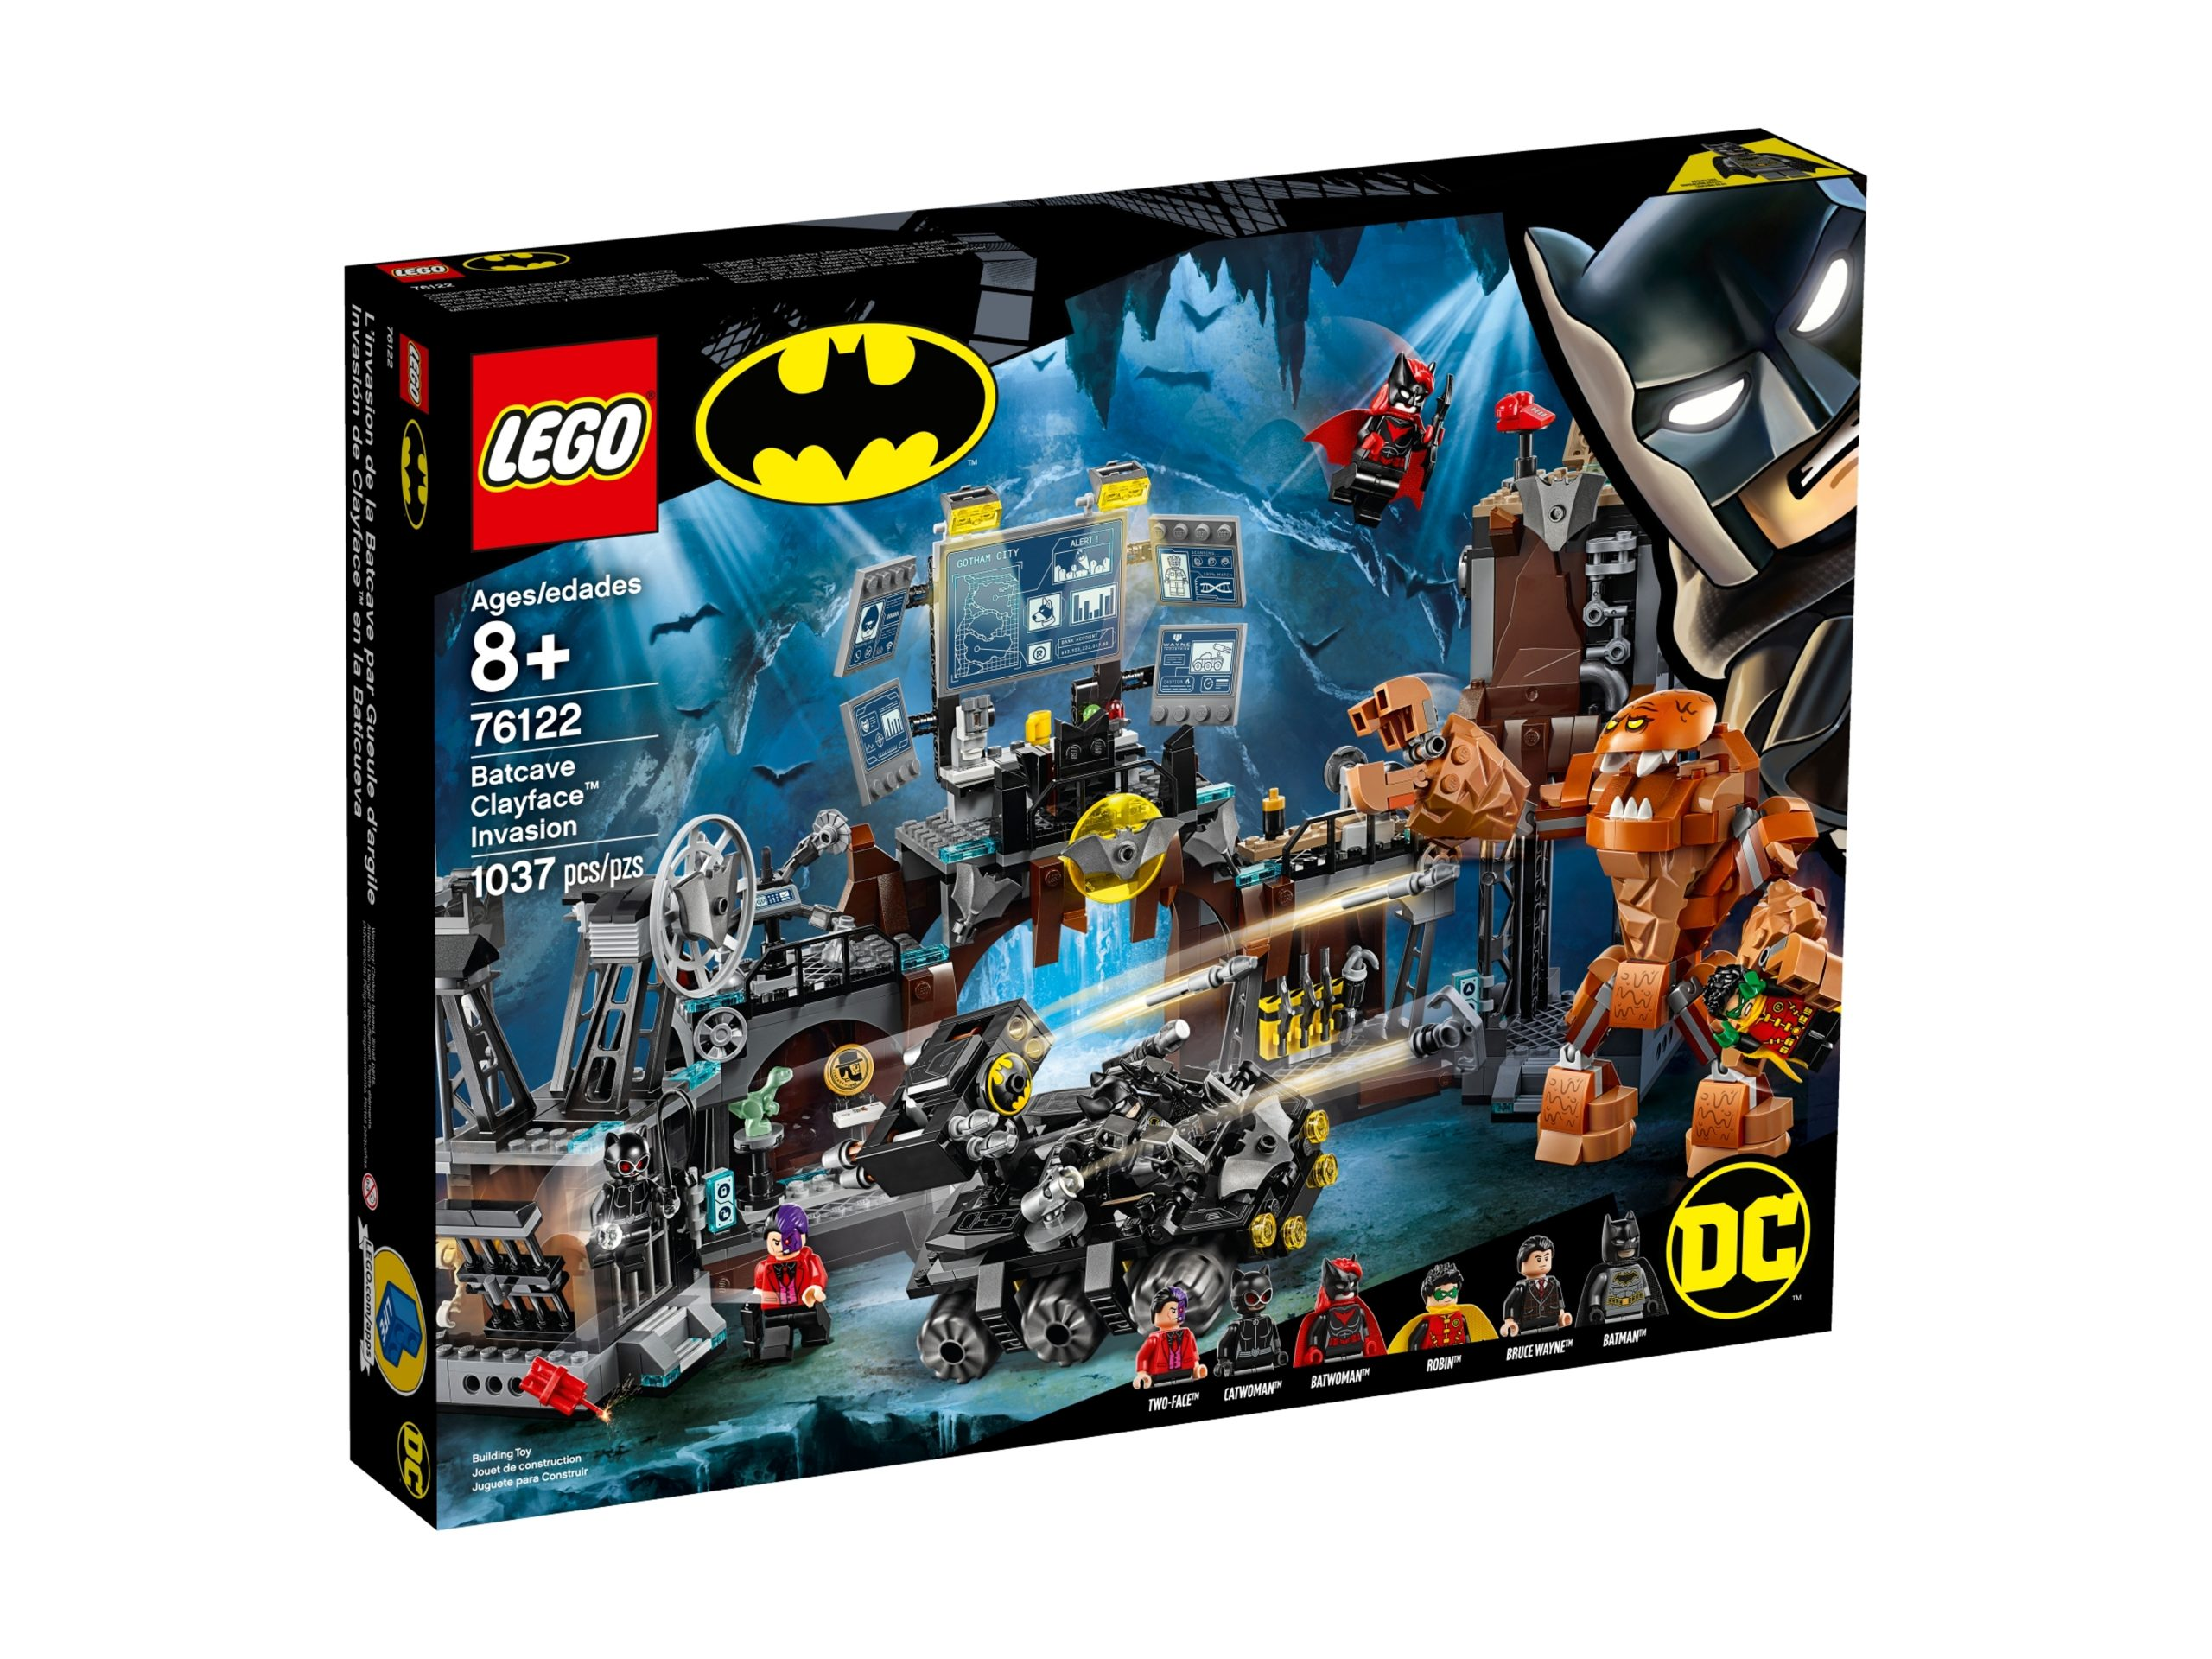 lego 76122 batcave clayface invasion scaled